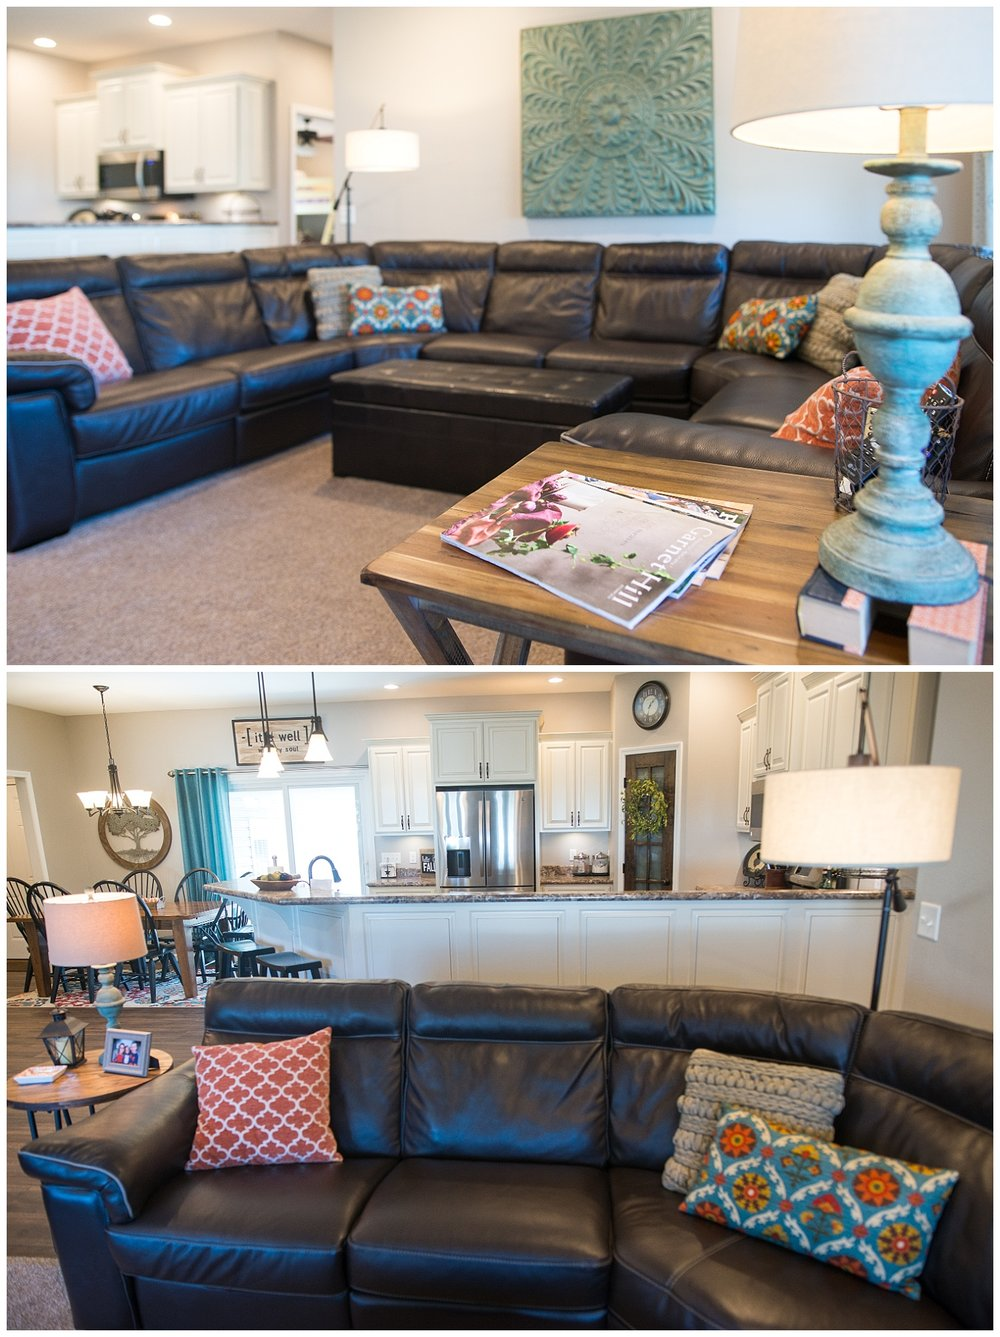 Walk through the front door and end up in Elizabeth's well laid out living room with a perfectly fitting wrap around leather couch. The TV is wall mounted to the left.